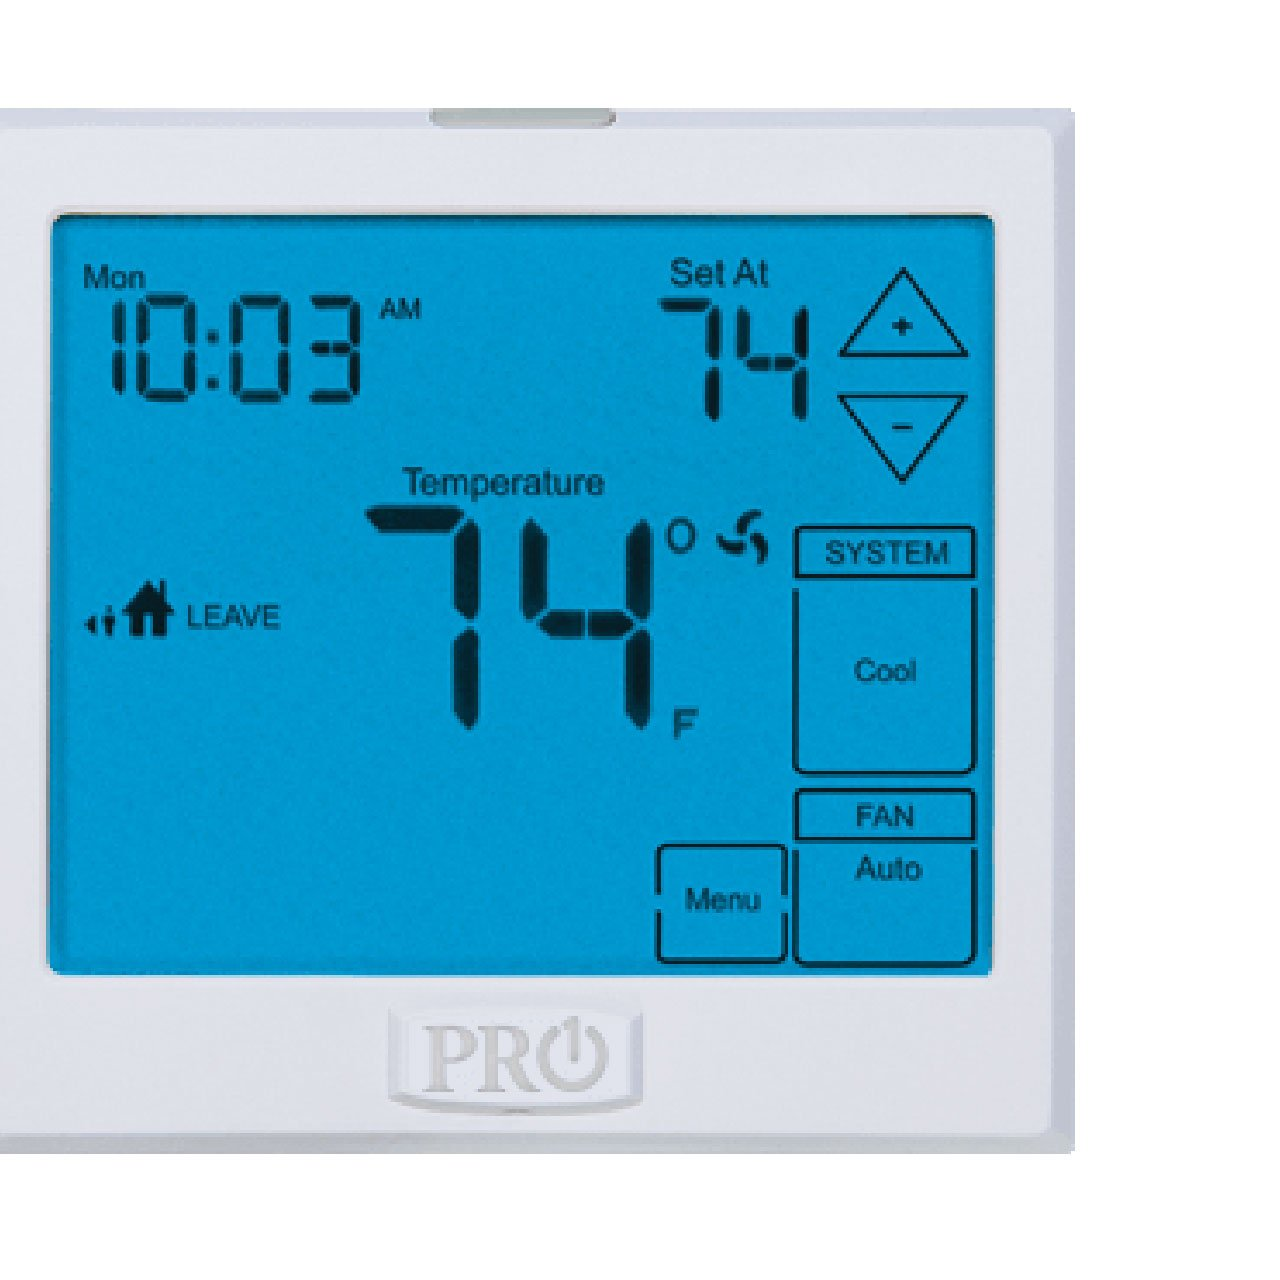 PRO1 IAQ T955 Touchscreen 3 Hot/2 Cold 7 Day Thermostat with 13-Inch Screen  - - Amazon.com